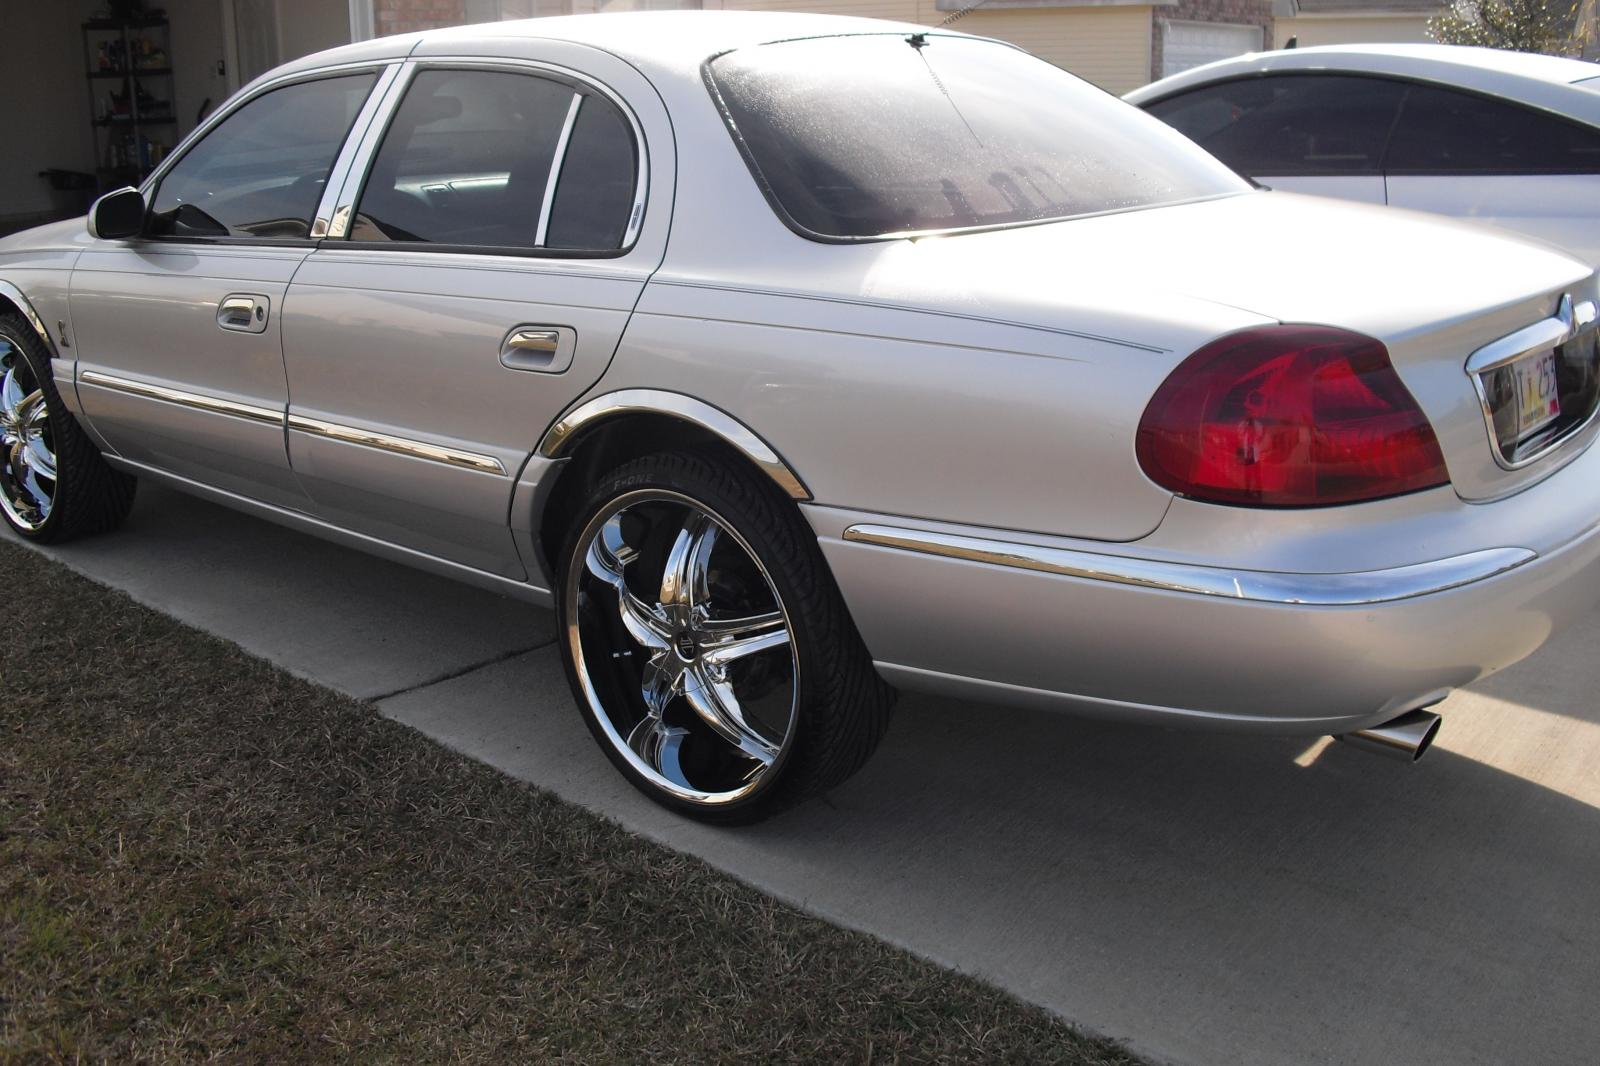 2000 Lincoln Continental Information And Photos Zombiedrive